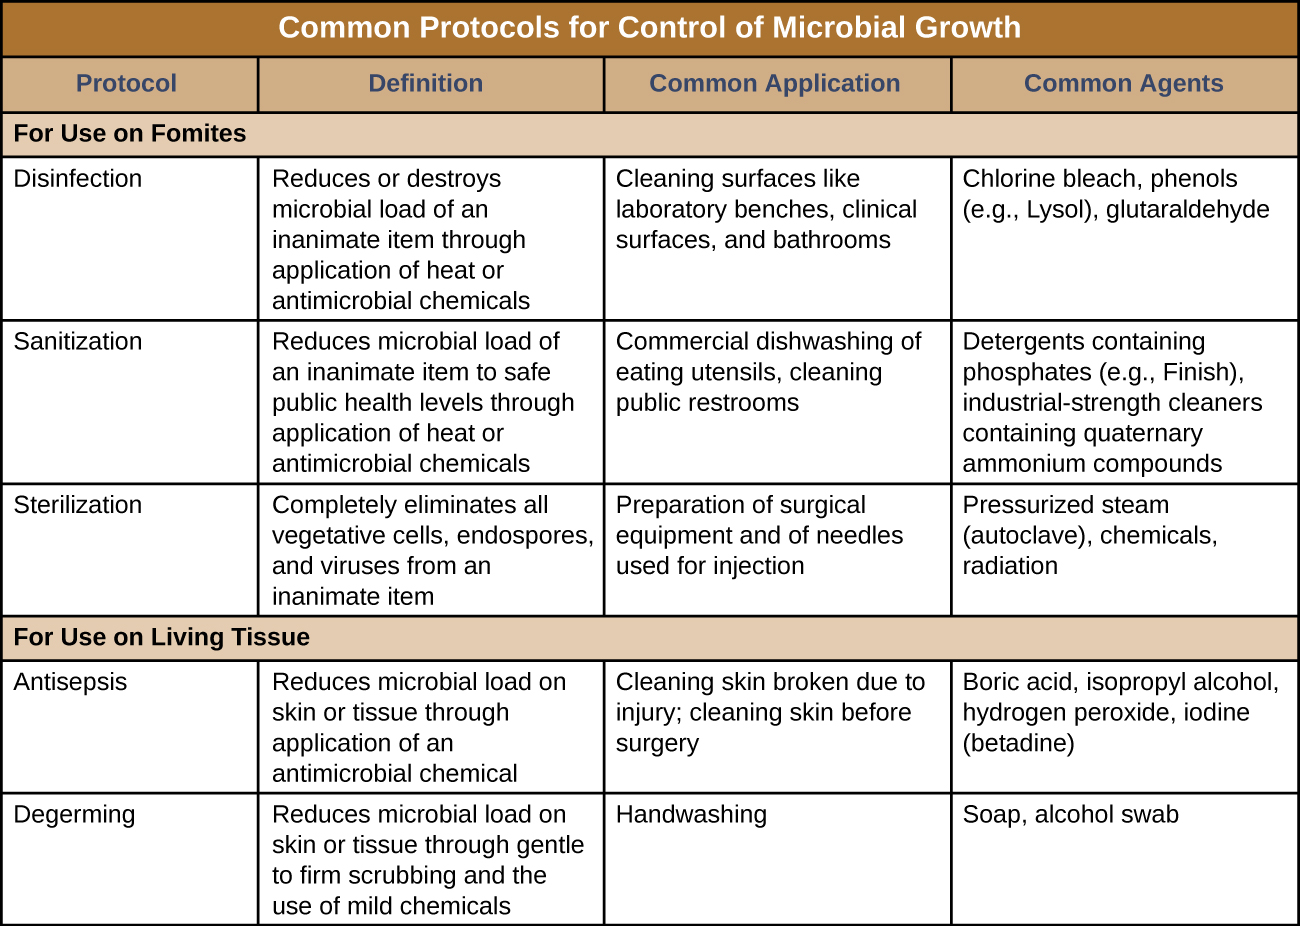 A table titled: Common protocols for control of microbial growth. Four columns: protocol, definition, common application and common agents. The table is divided by protocols used for fomites and those used on living tissue. Protocols for fomites include disinfection, sanitation, and sterilization. Disinfection reduces or destroys microbial load of an inanimate item through application of heat or antimicrobial chemicals. Disinfection involves cleaning surfaces like laboratory benches, clinical surfaces, and bathrooms and uses Chlorine bleach, phenols (e.g., Lysol), glutaraldehyde. Sanitization reduces microbial load of an inanimate item to safe public health levels through application of heat or antimicrobial chemicals. Sanitation involves Commercial dishwashing of eating utensils, cleaning public restrooms and uses Detergents containing phosphates (e.g., Finish), industrial-strength cleaners containing quaternary ammonium compounds. Sterilization Completely eliminates all vegetative cells, endospores, and viruses from an inanimate item. Sterilization involves Preparation of surgical equipment and of needles used for injection and uses Pressurized steam (autoclave), chemicals, radiation.  Protocols for living tissue include antisepsis and degerming. Antisepsis Reduces microbial load on skin or tissue through application of an antimicrobial chemical. Antisepsis involves Cleaning skin broken due to injury; cleaning skin before surgery and uses Boric acid, isopropyl alcohol, hydrogen peroxide, iodine (betadine). Degerming Reduces microbial load on skin or tissue through gentle to firm scrubbing and the use of mild chemicals. Degerming involves Handwashing and uses Soap, alcohol swab.